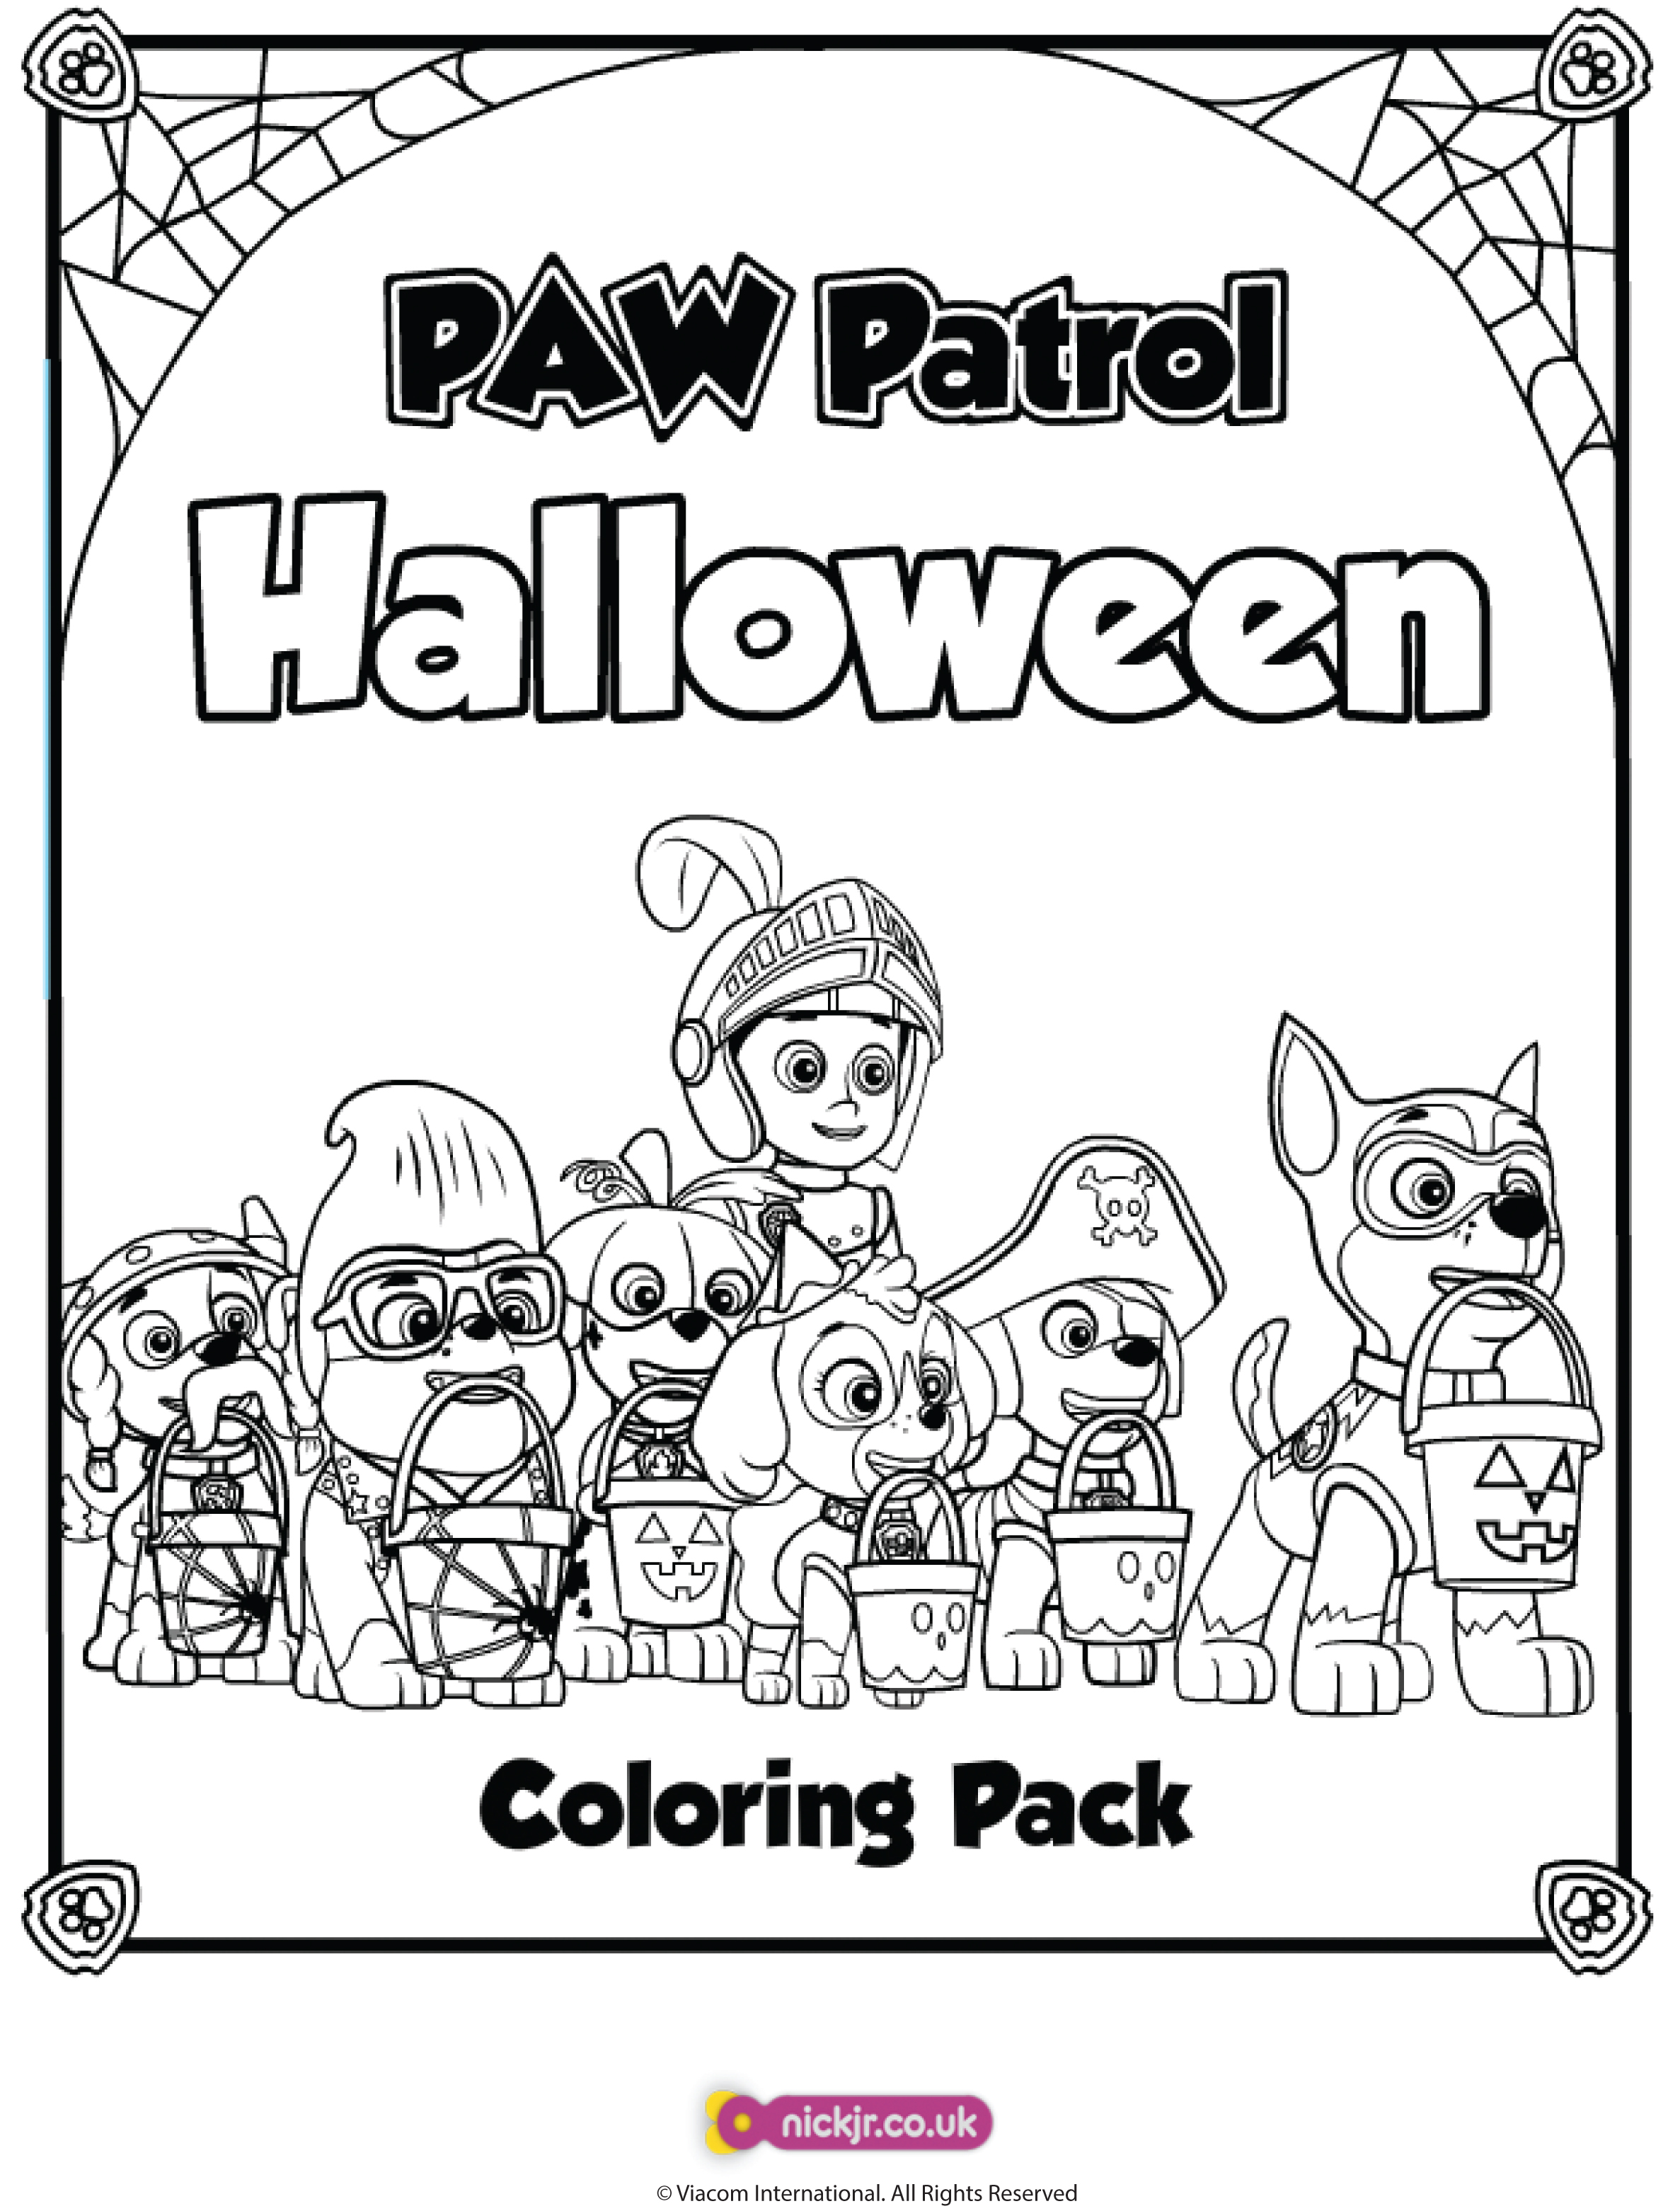 paw-patrol-halloween-colouring-pack-1